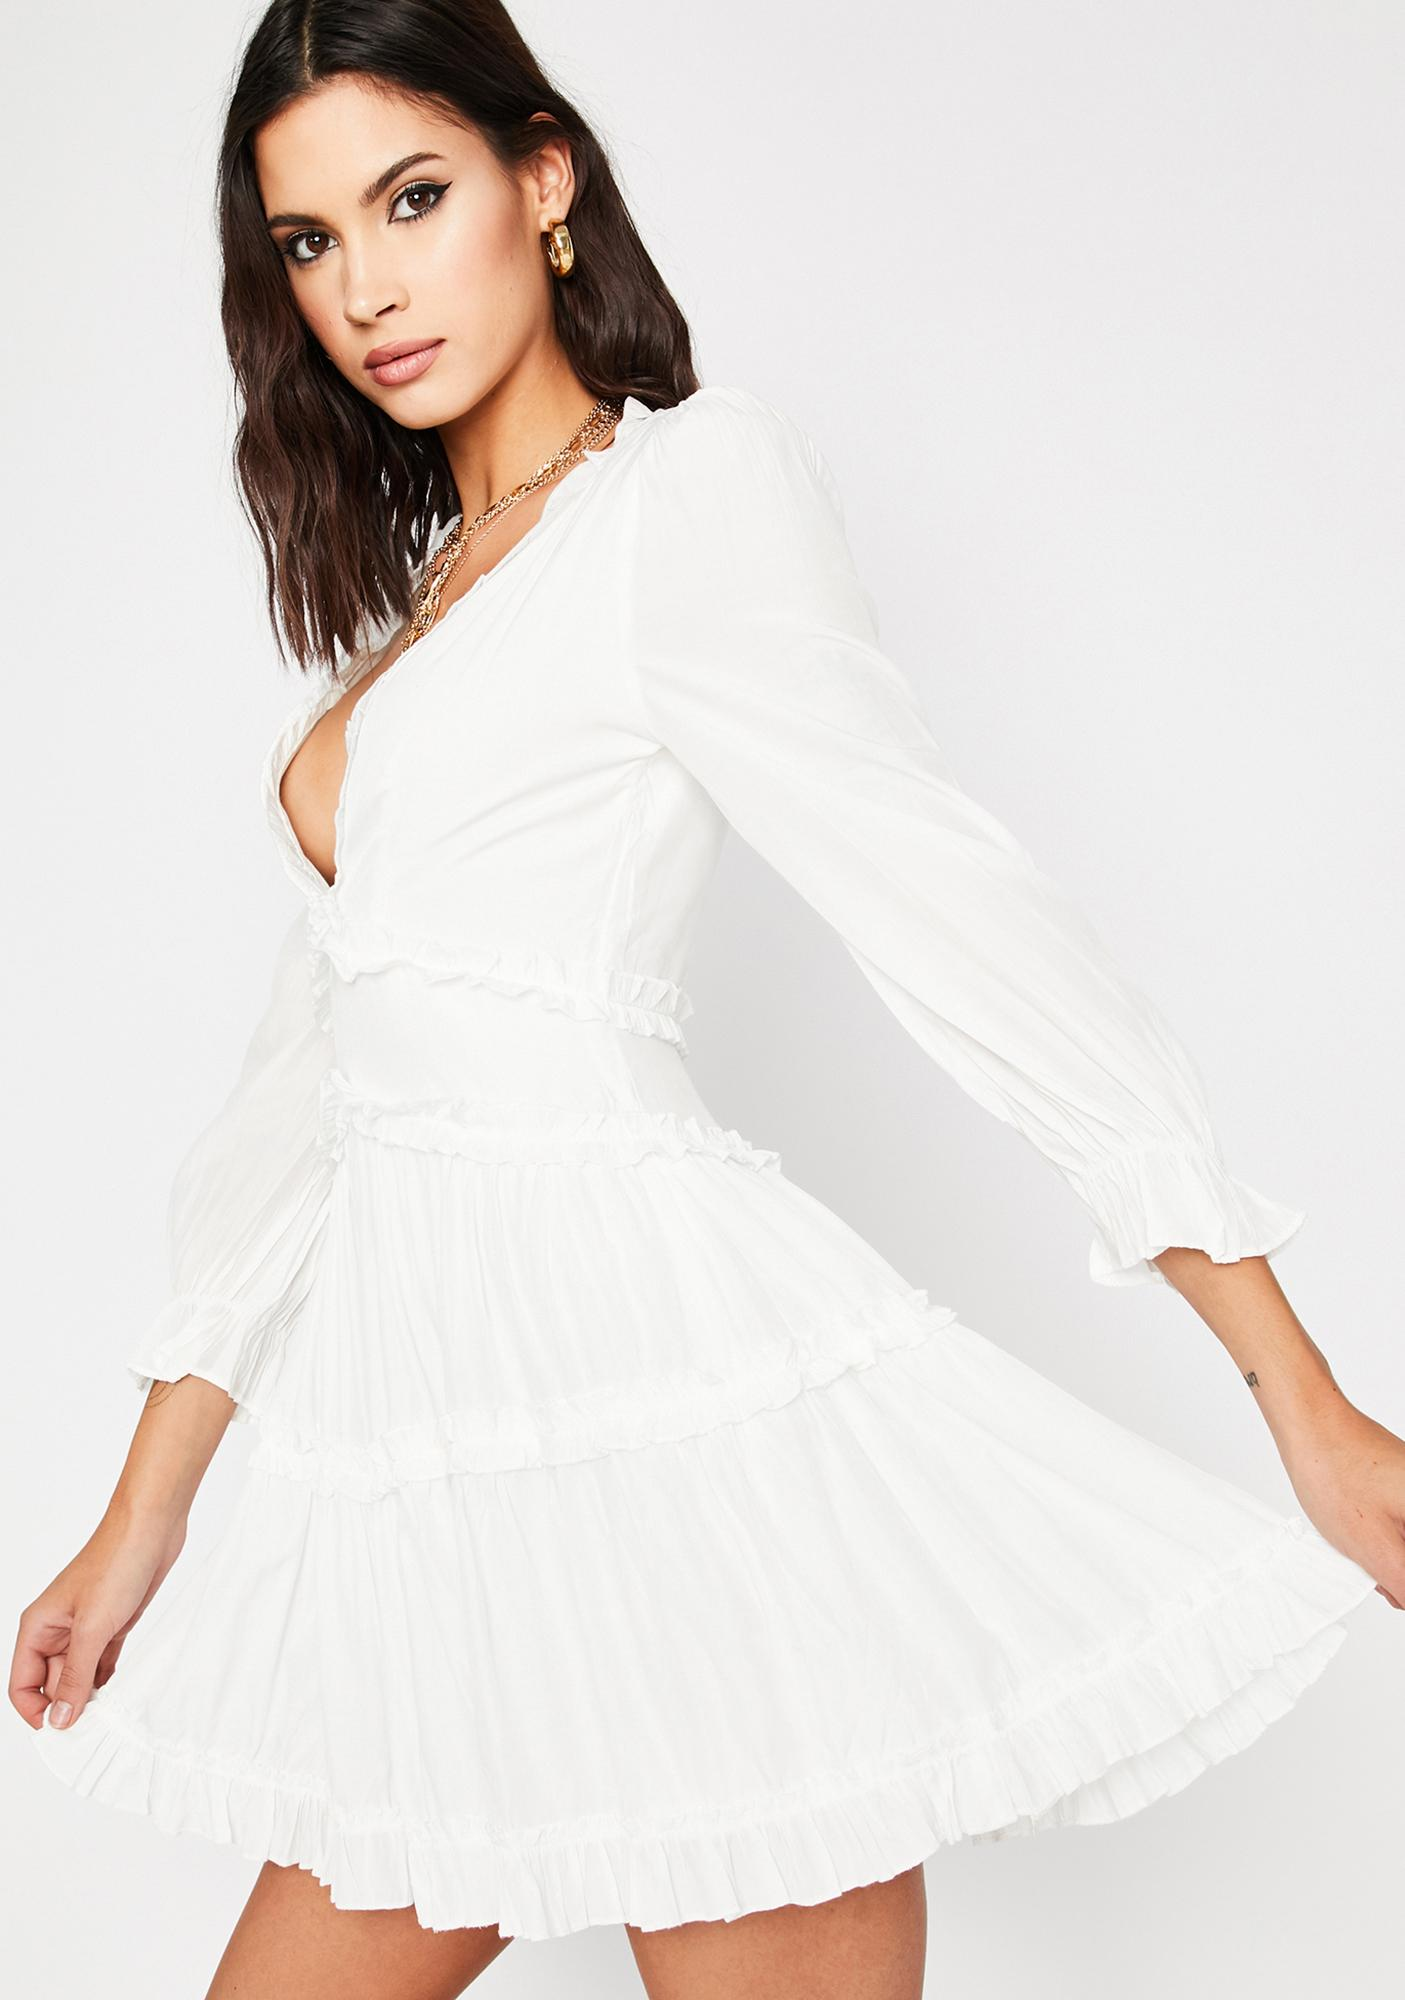 Runaway Roadie Ruffle Dress